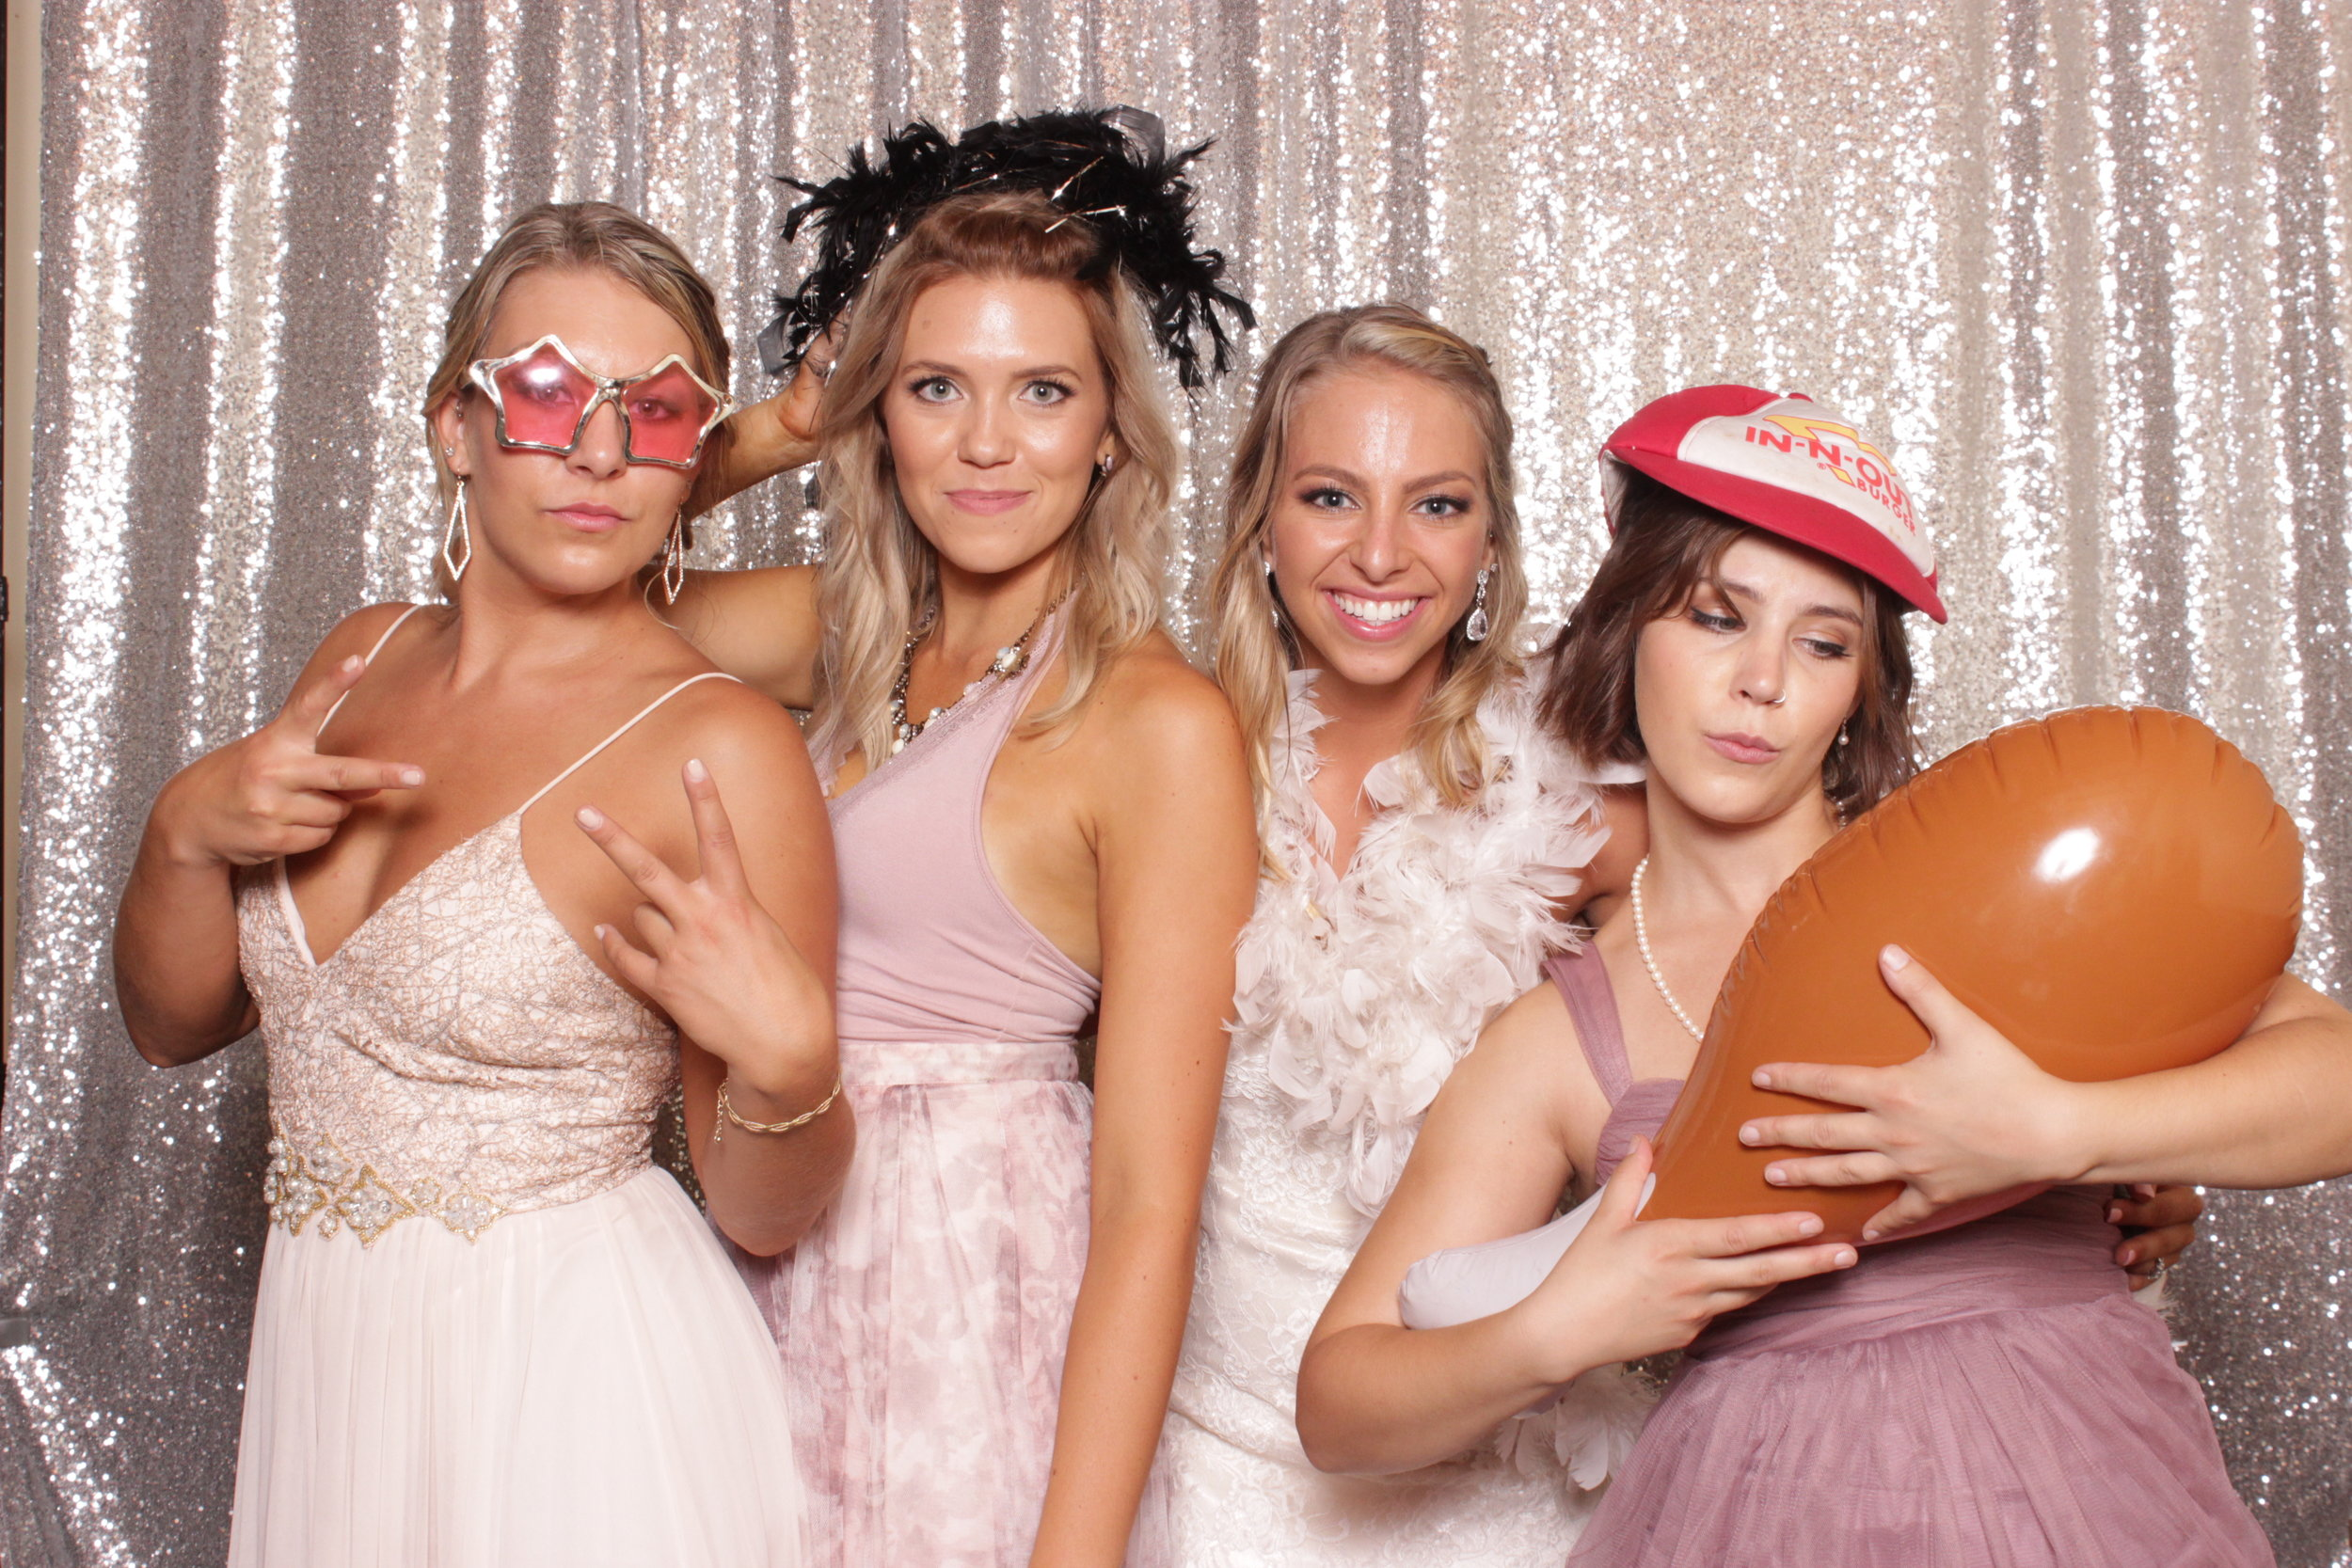 rent-photo-booth-for-chico-wedding